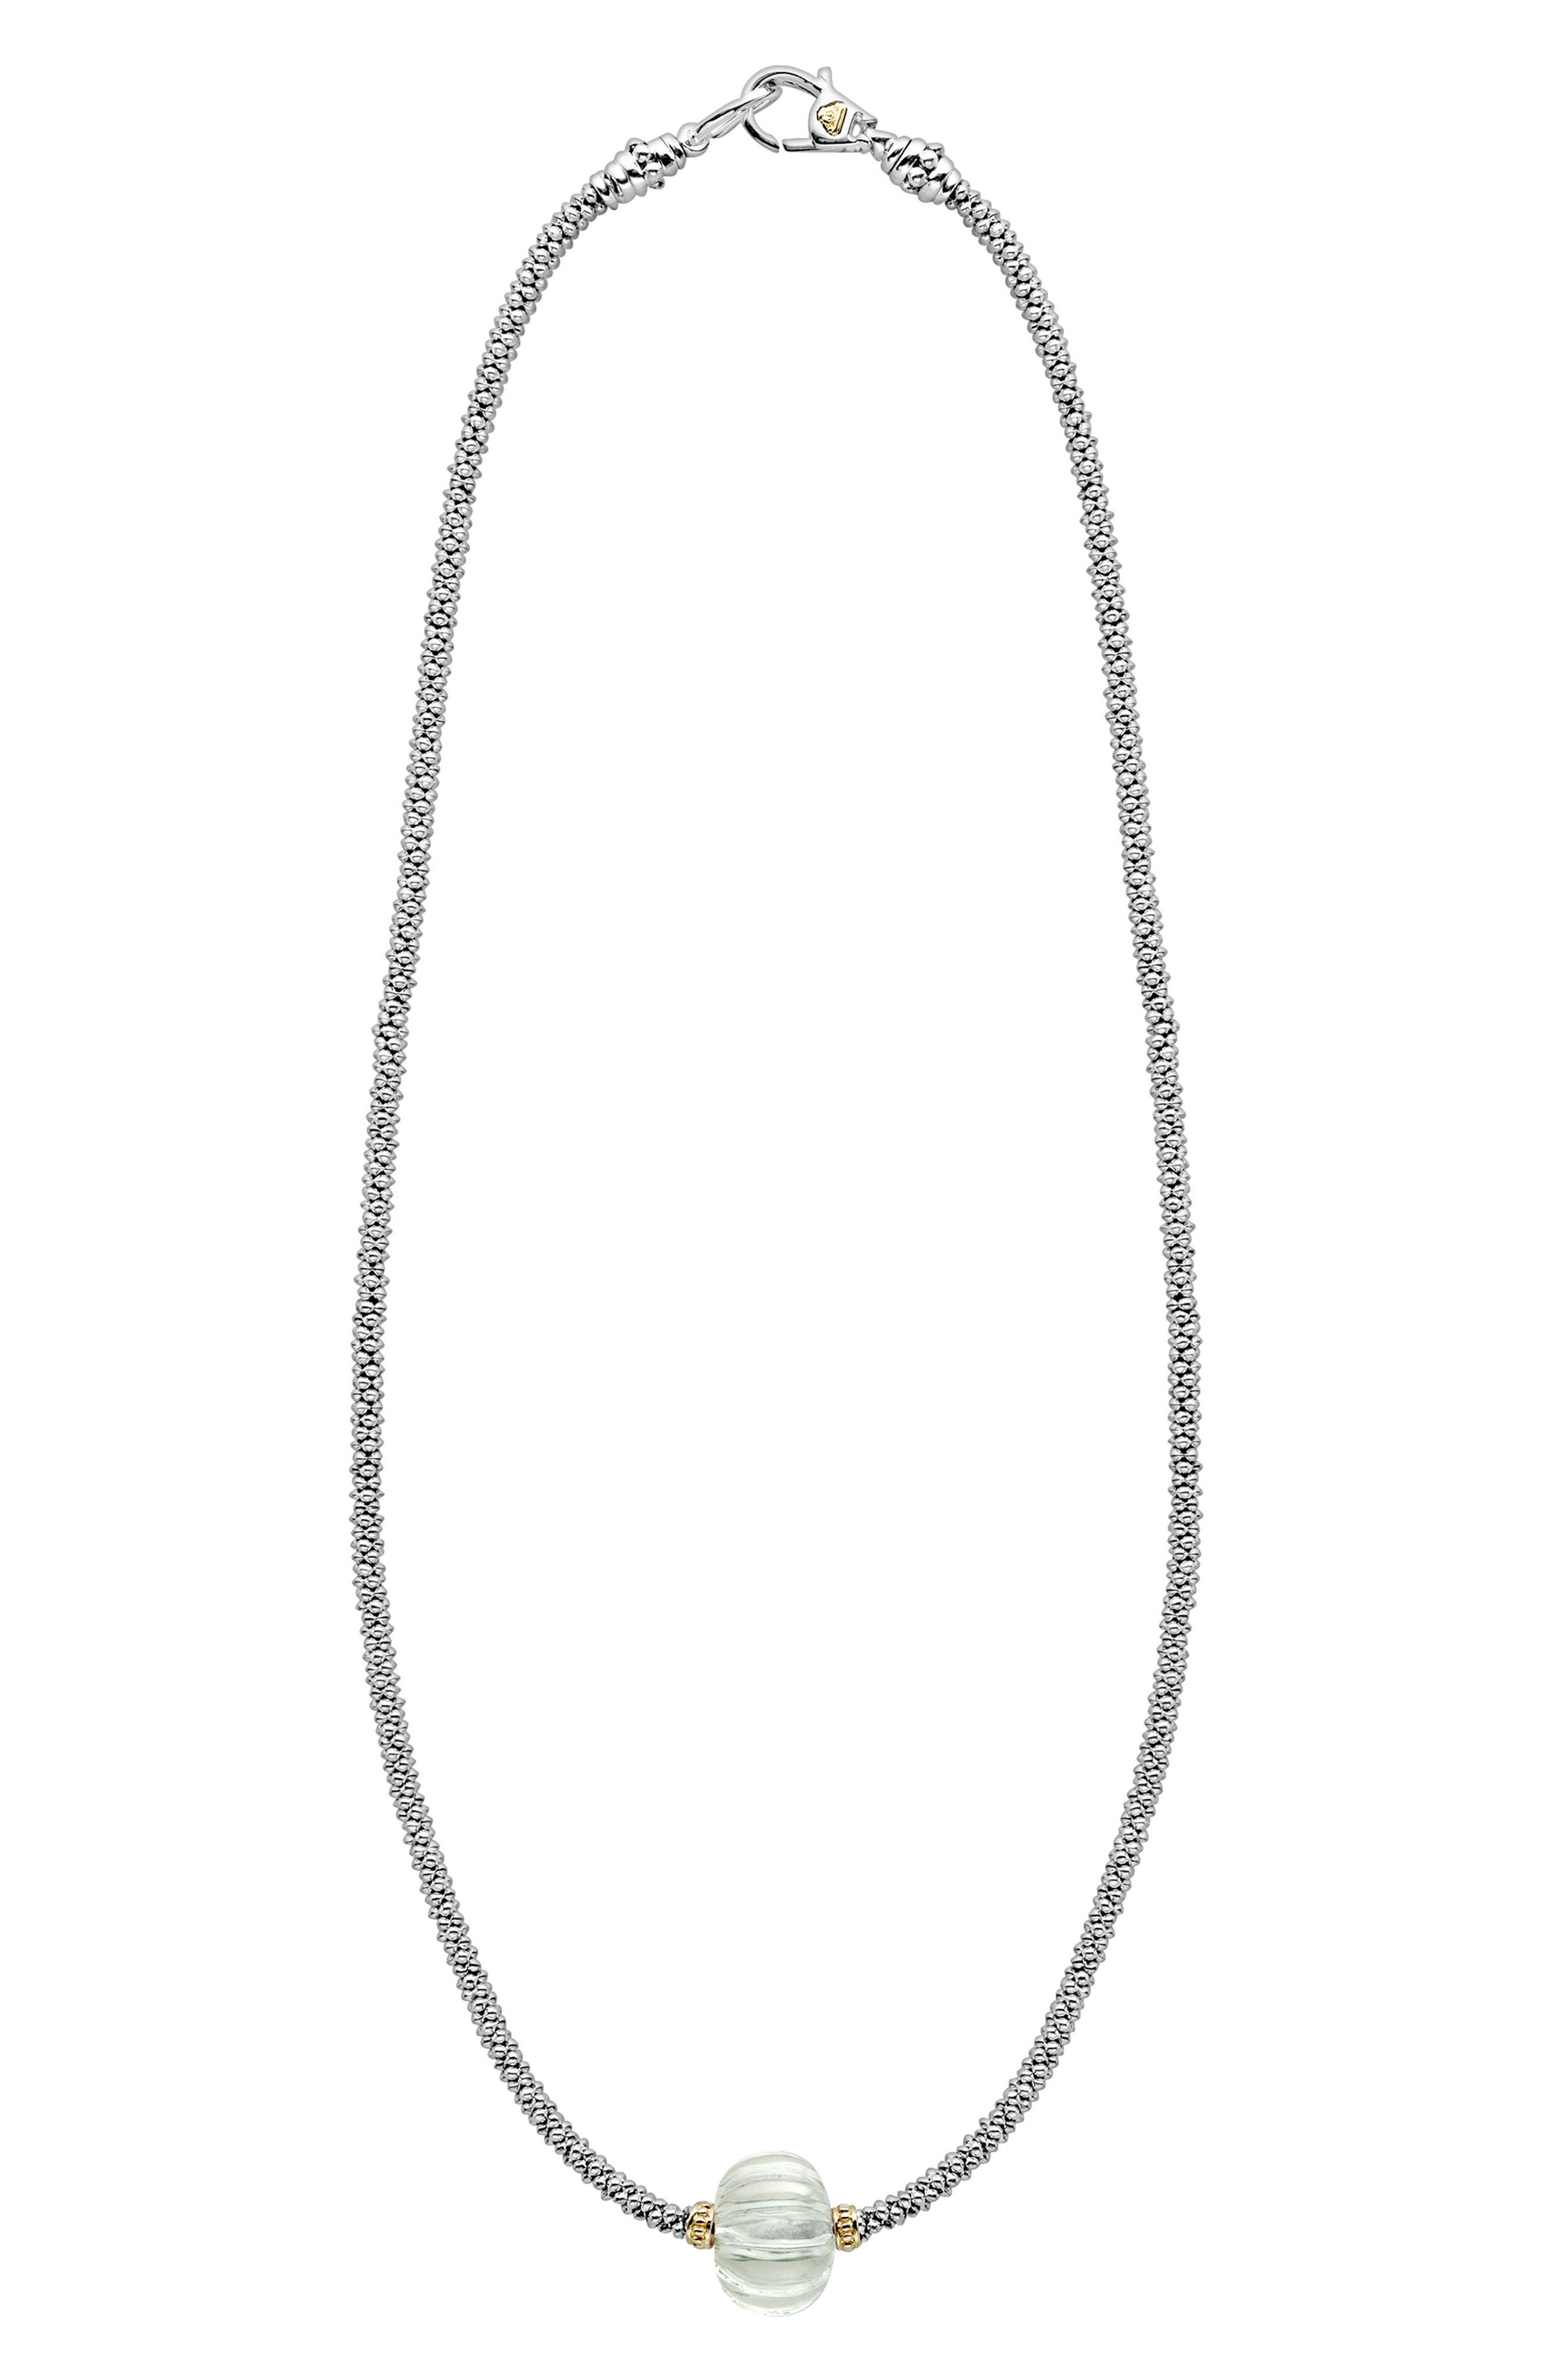 Caviar Forever Melon Bead Rope Necklace,                         Main,                         color, Silver/ Green Amethyst